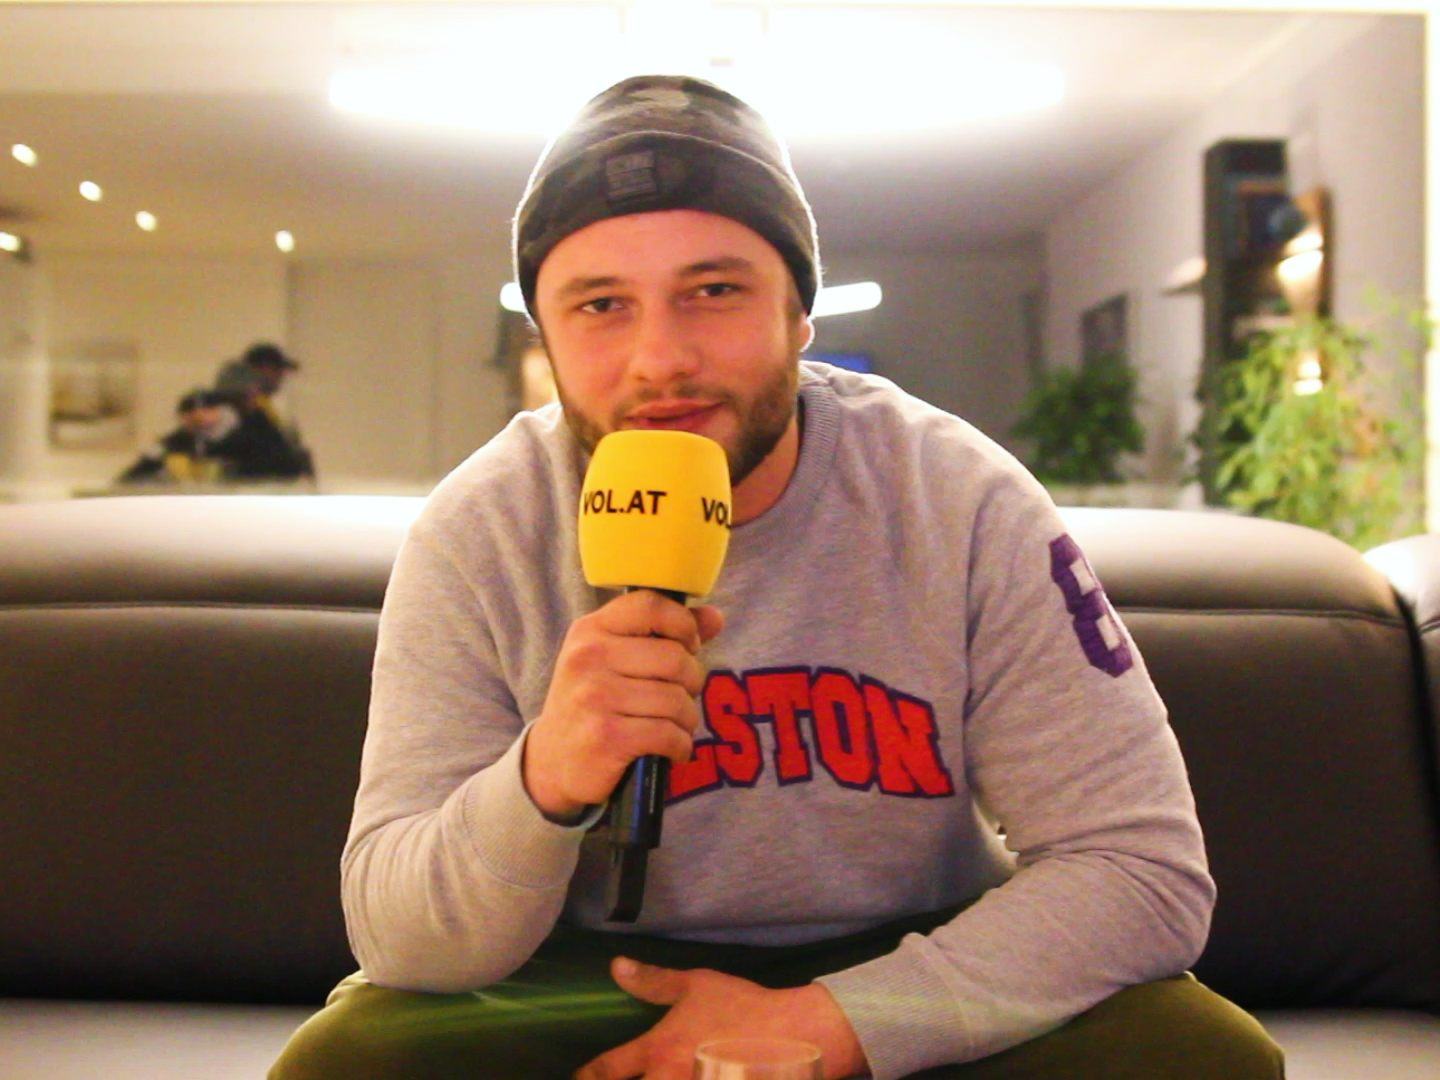 Vorarlbergs Talente: Ländle Rapper Smile im VOL.AT Interview.